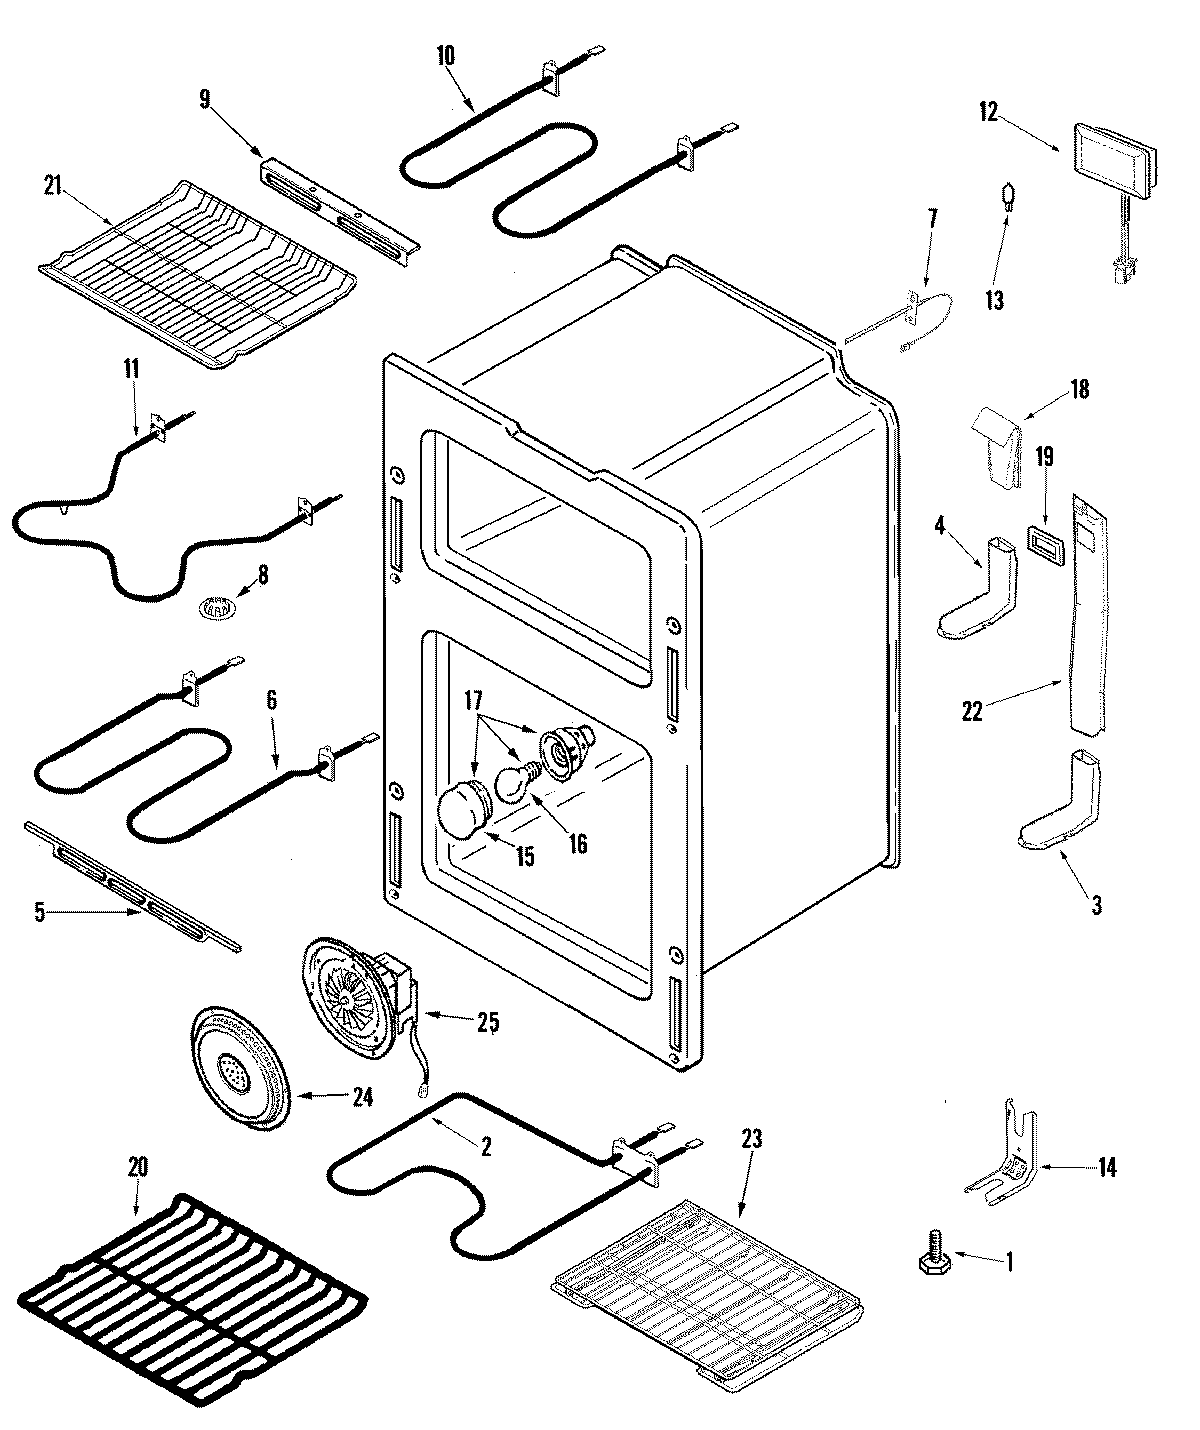 OVEN Diagram & Parts List for Model MER6875BAS Maytag